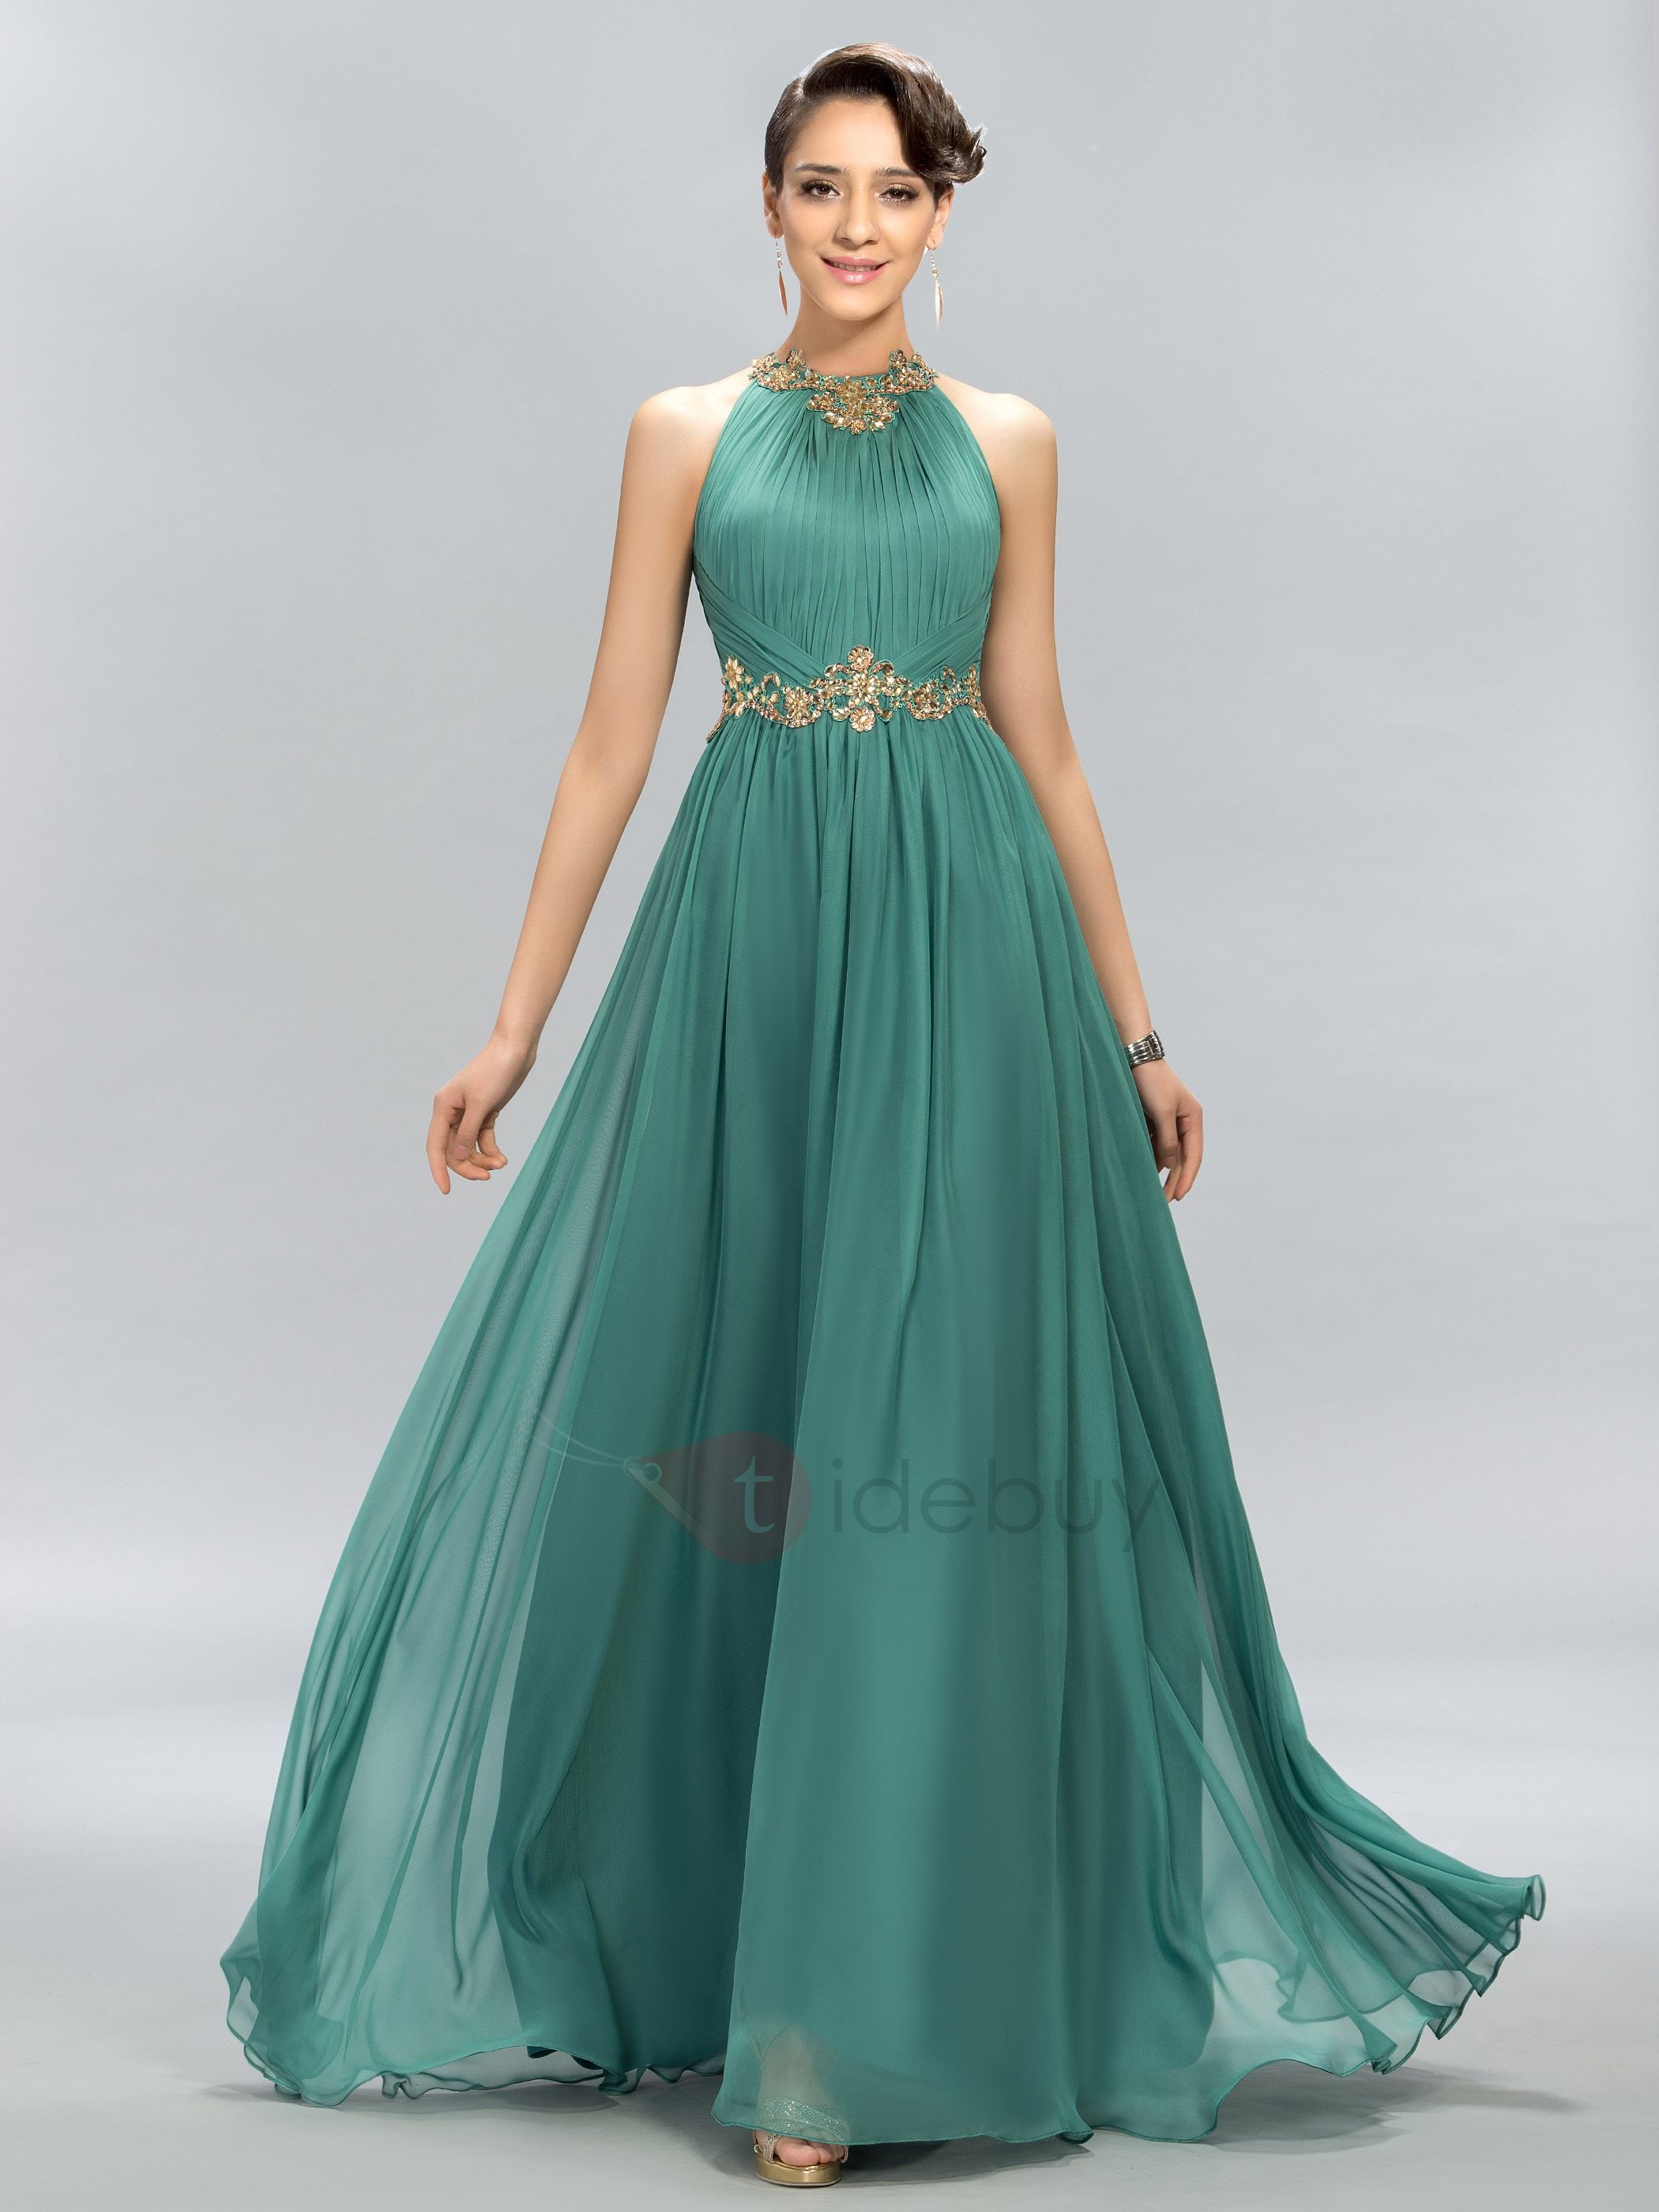 2016 Evening Dresses & Gowns in Trend Online Sale : Tidebuy.com